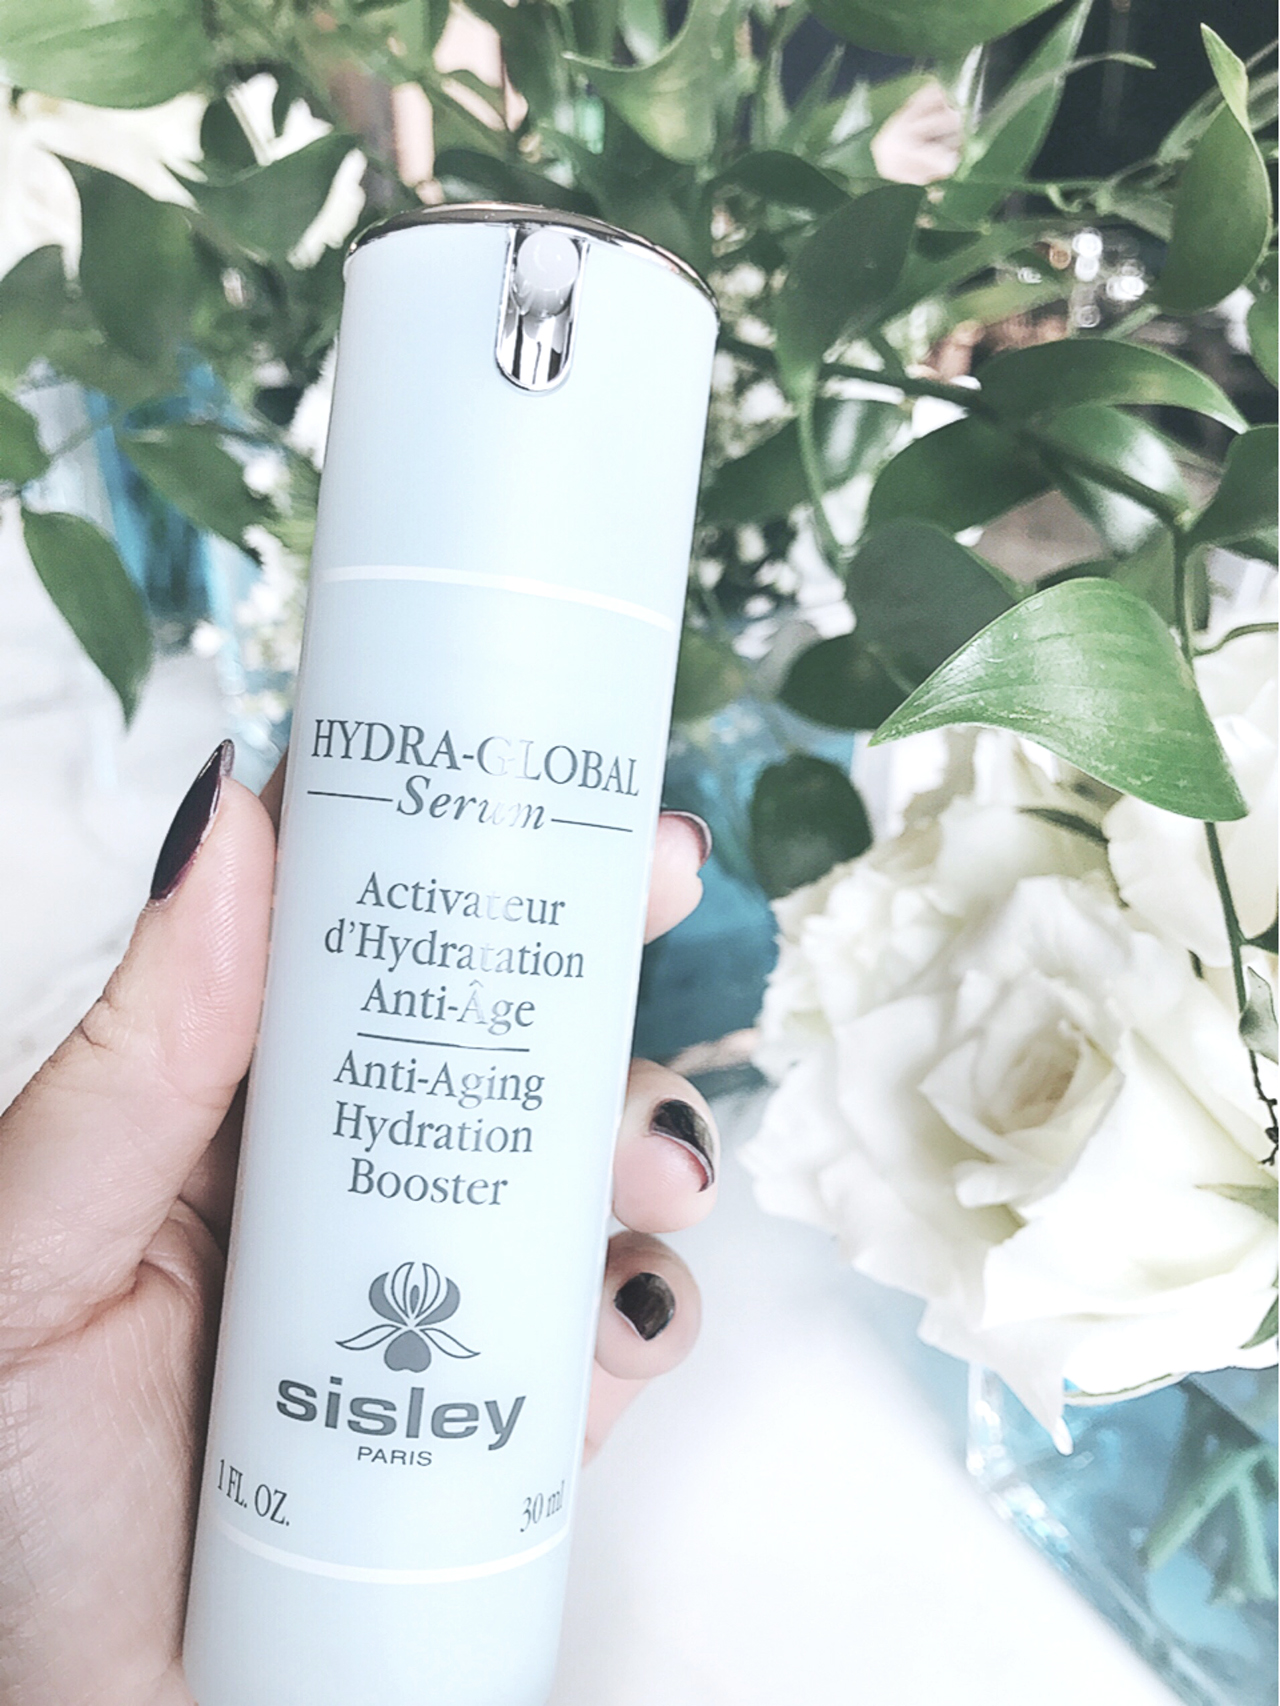 Sisley Hydra-Global Serum closeup